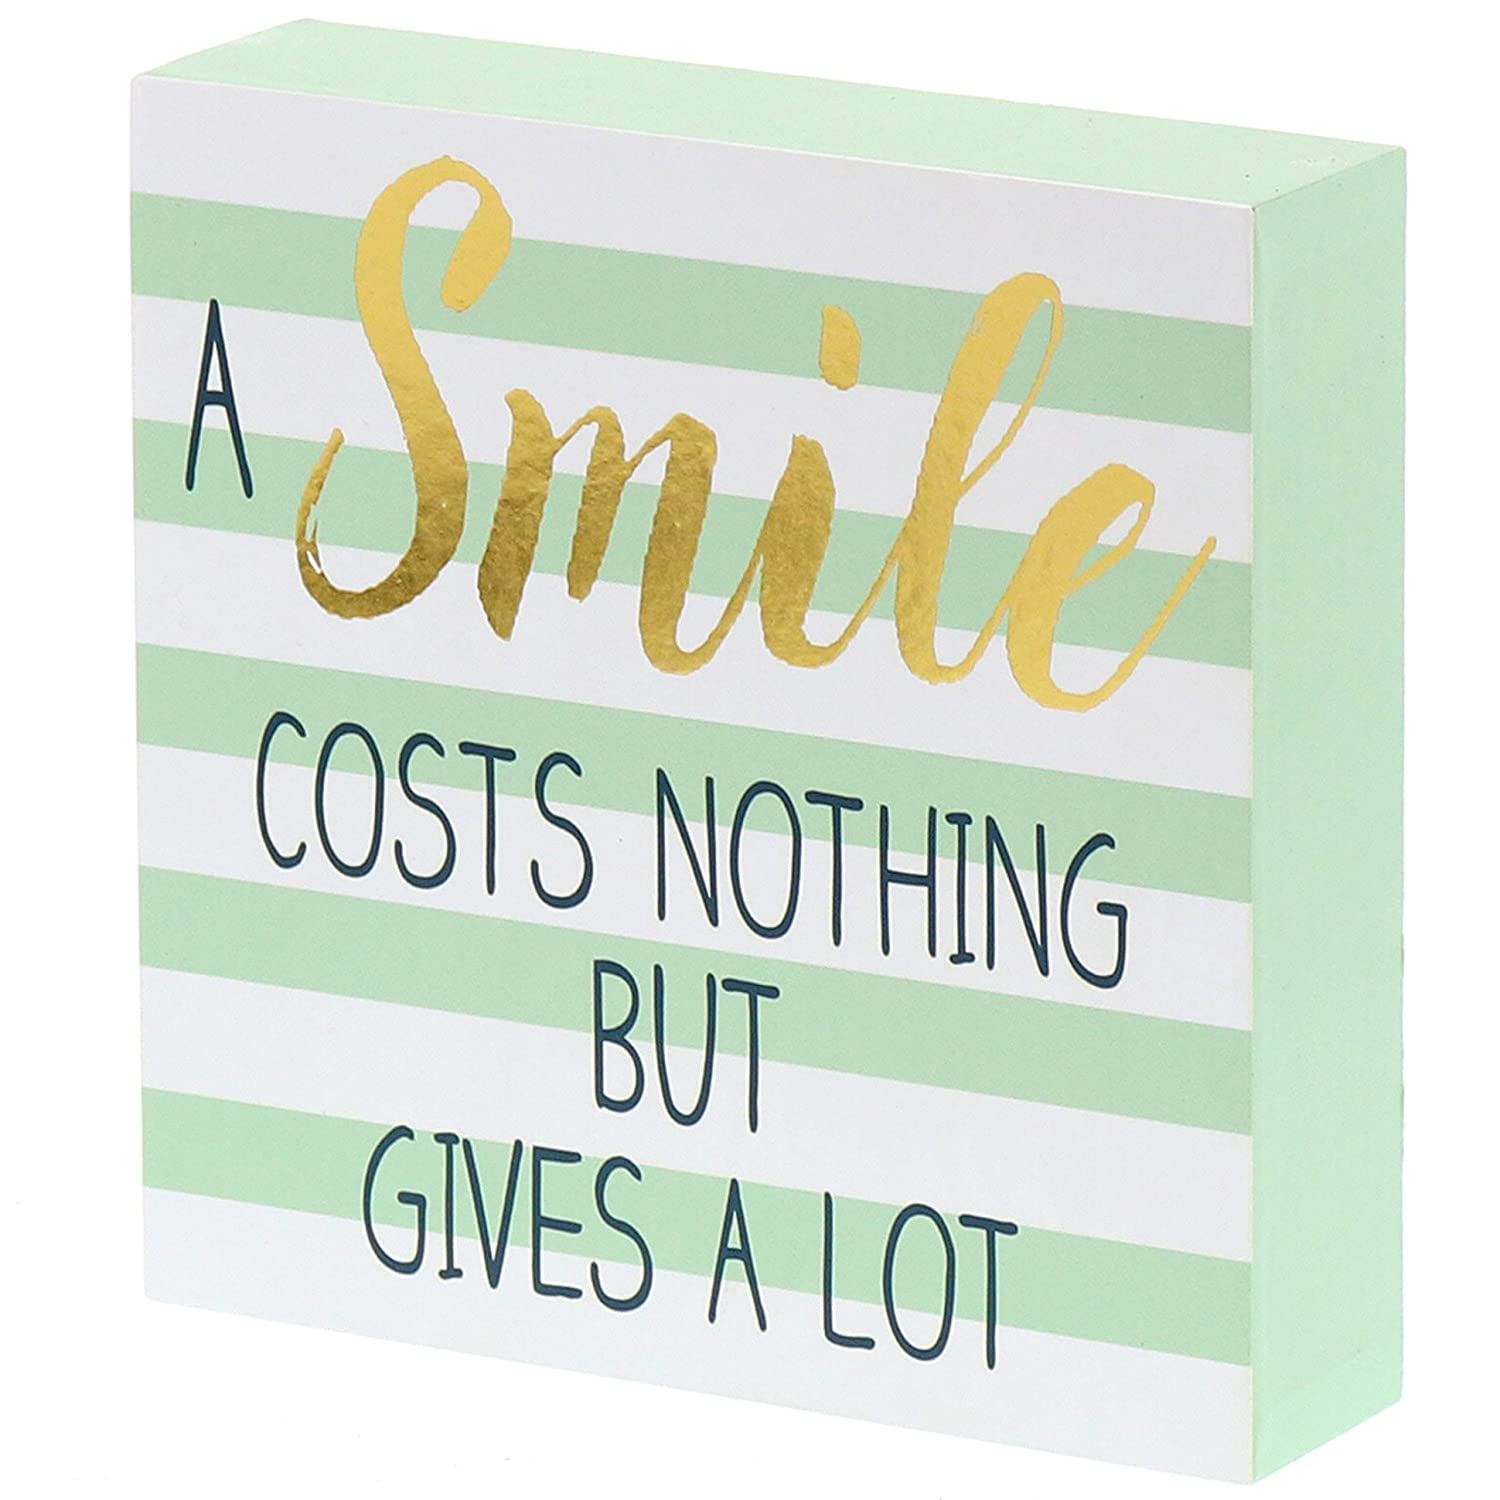 """Barnyard Designs A Smile Costs Nothing But Gives A Lot Wooden Box Wall Art Sign, Primitive Country Farmhouse Home Decor Sign with Sayings 6"""" x 6"""""""